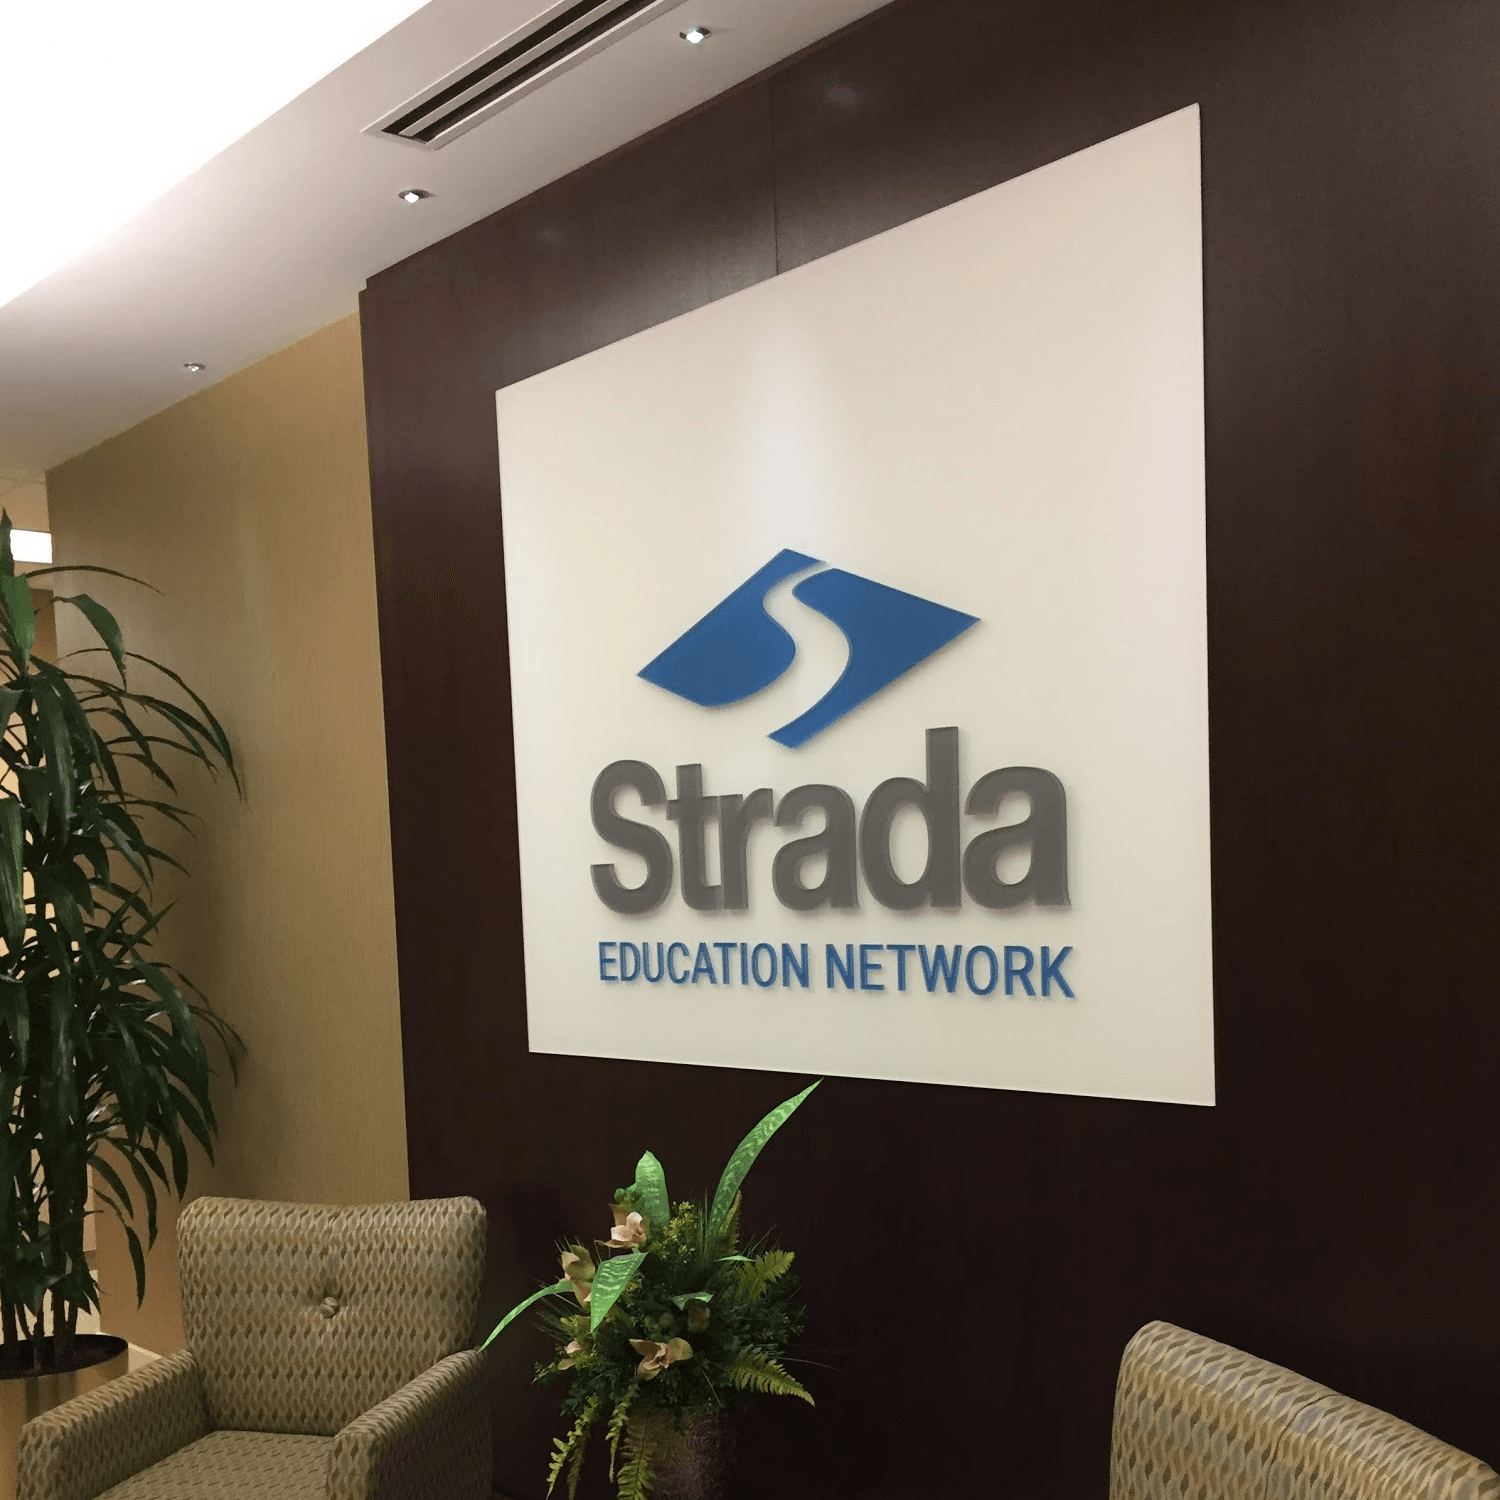 strada-office-photo-2.png